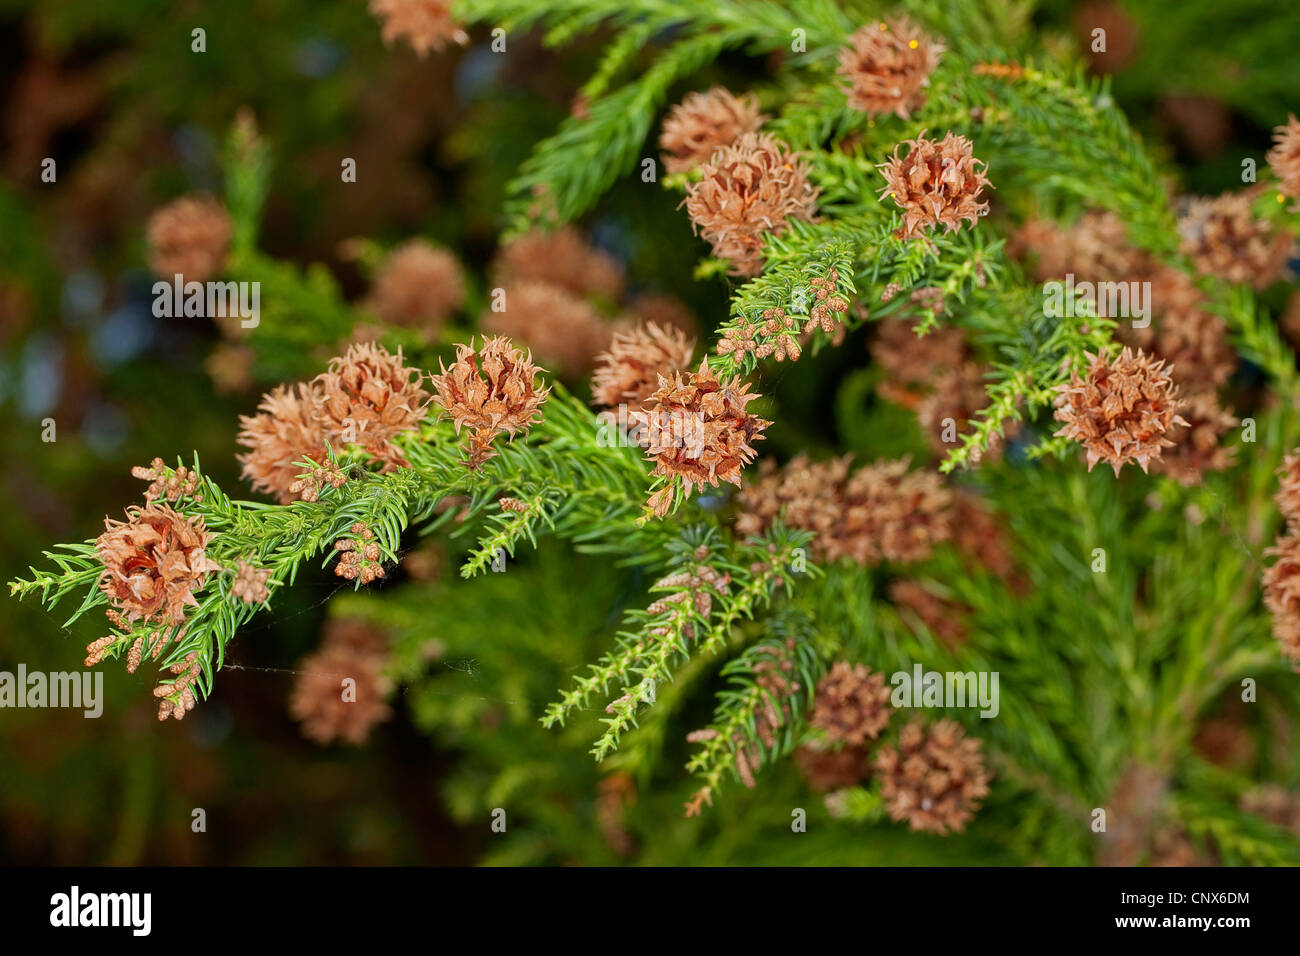 Japanese Cedar Cryptomeria Japonica Branch With Cones Stock